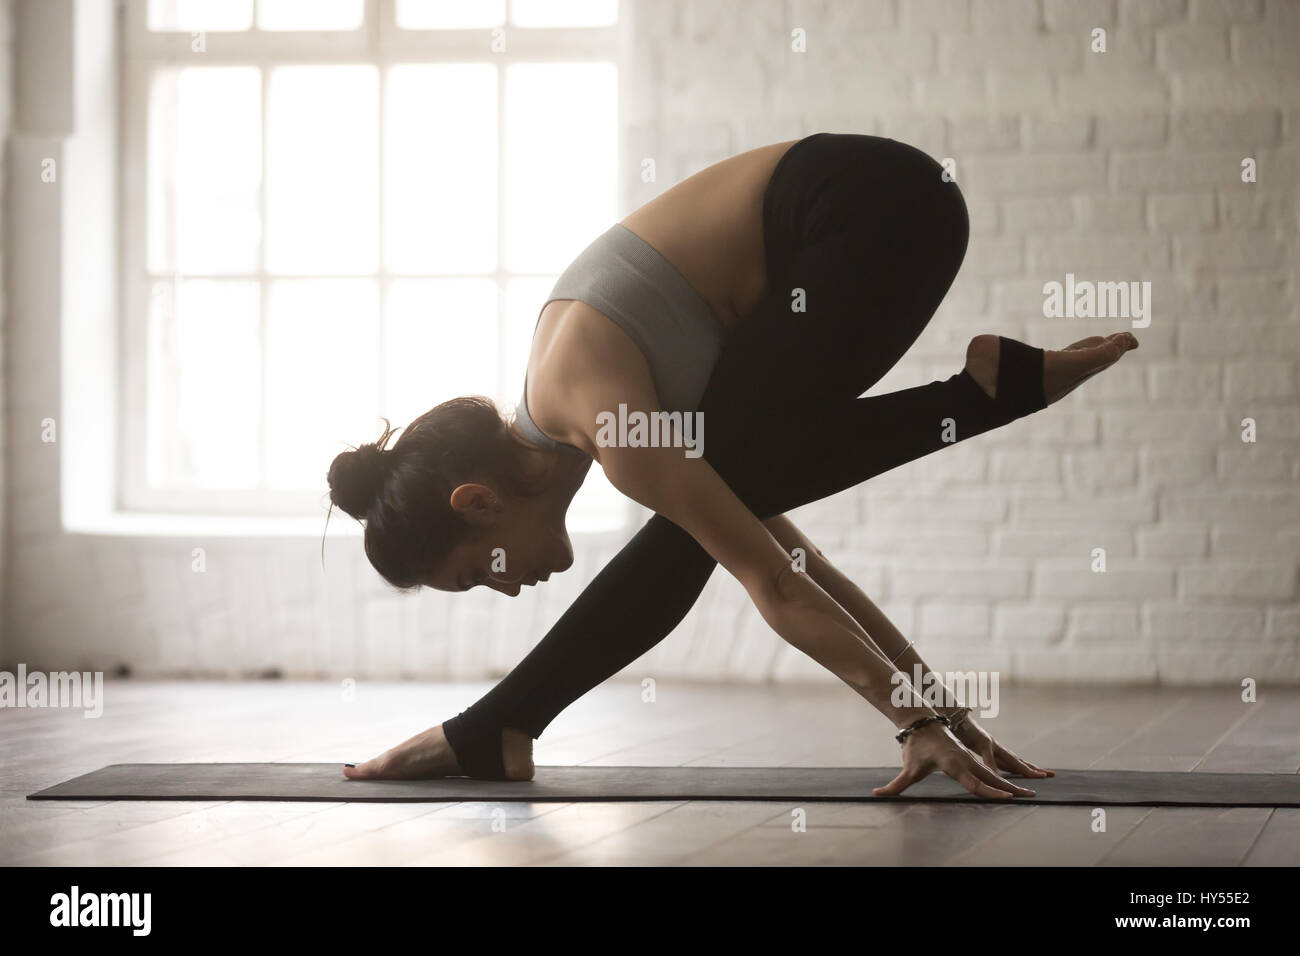 Young attractive woman in balance dancing pose, white loft studi - Stock Image